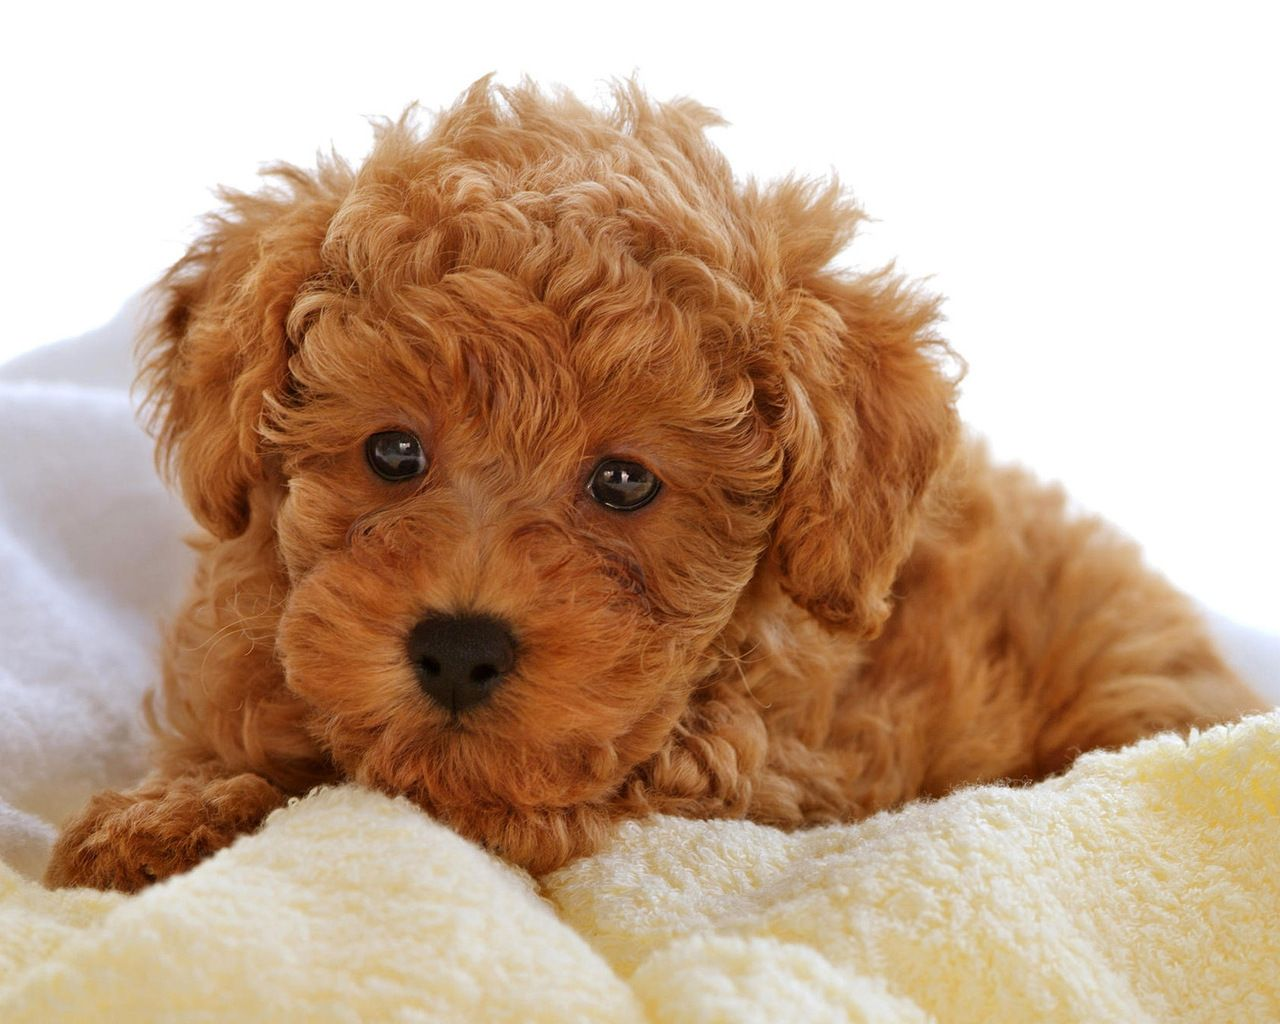 A Ginger Red Poodle Puppy Photo Chien Bebes Animaux Chien Mignon